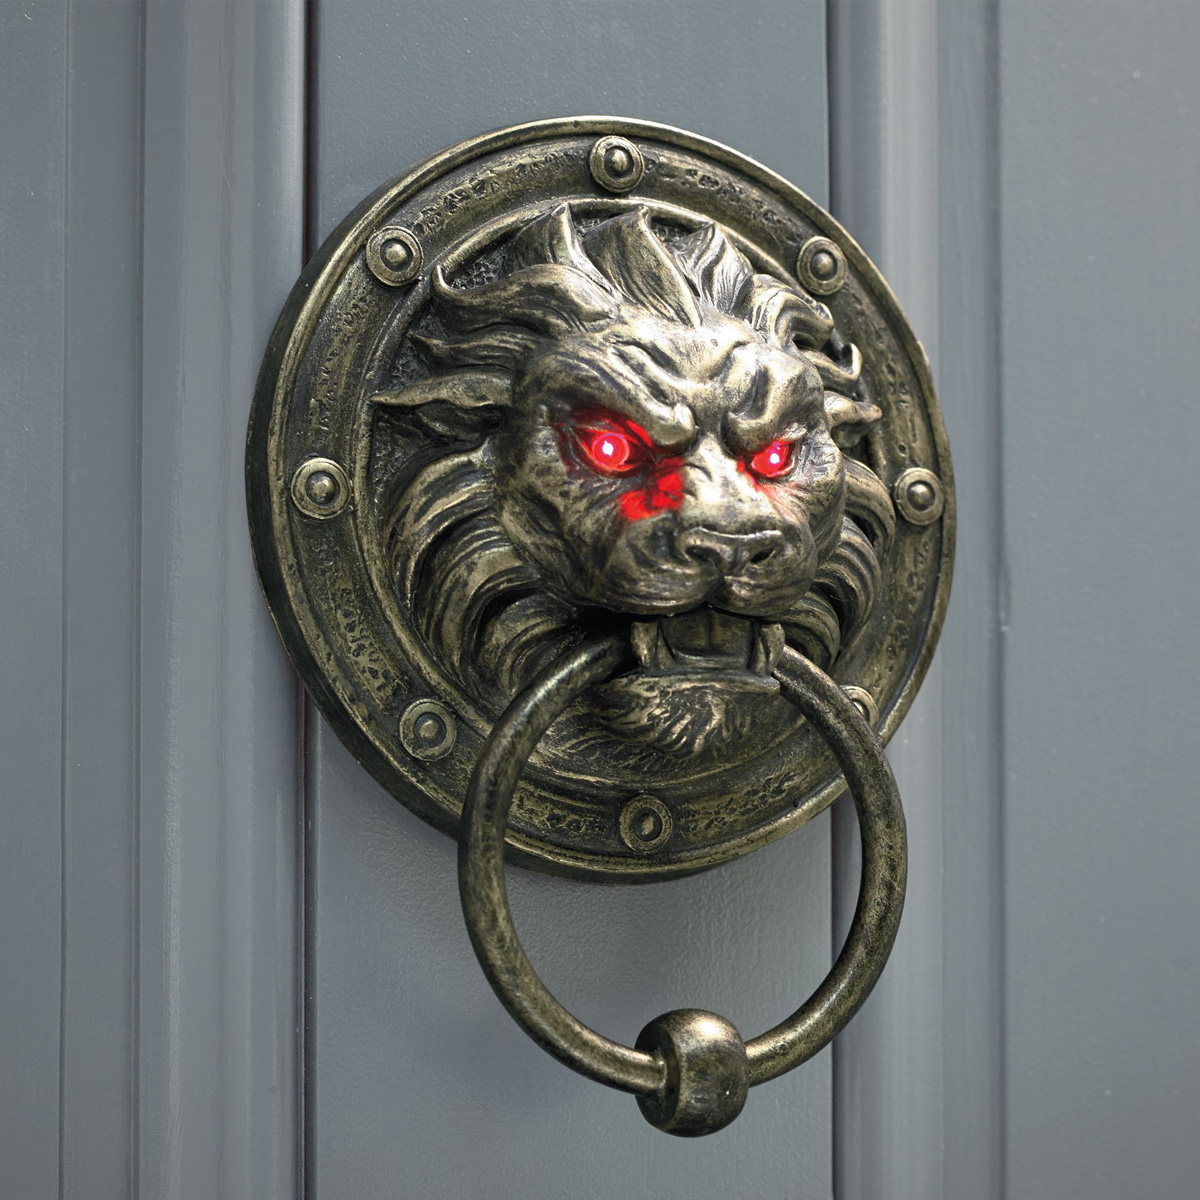 Gothic Decorating Ideas Creepy Lion Door Knocker With Glowing Eyes The Green Head